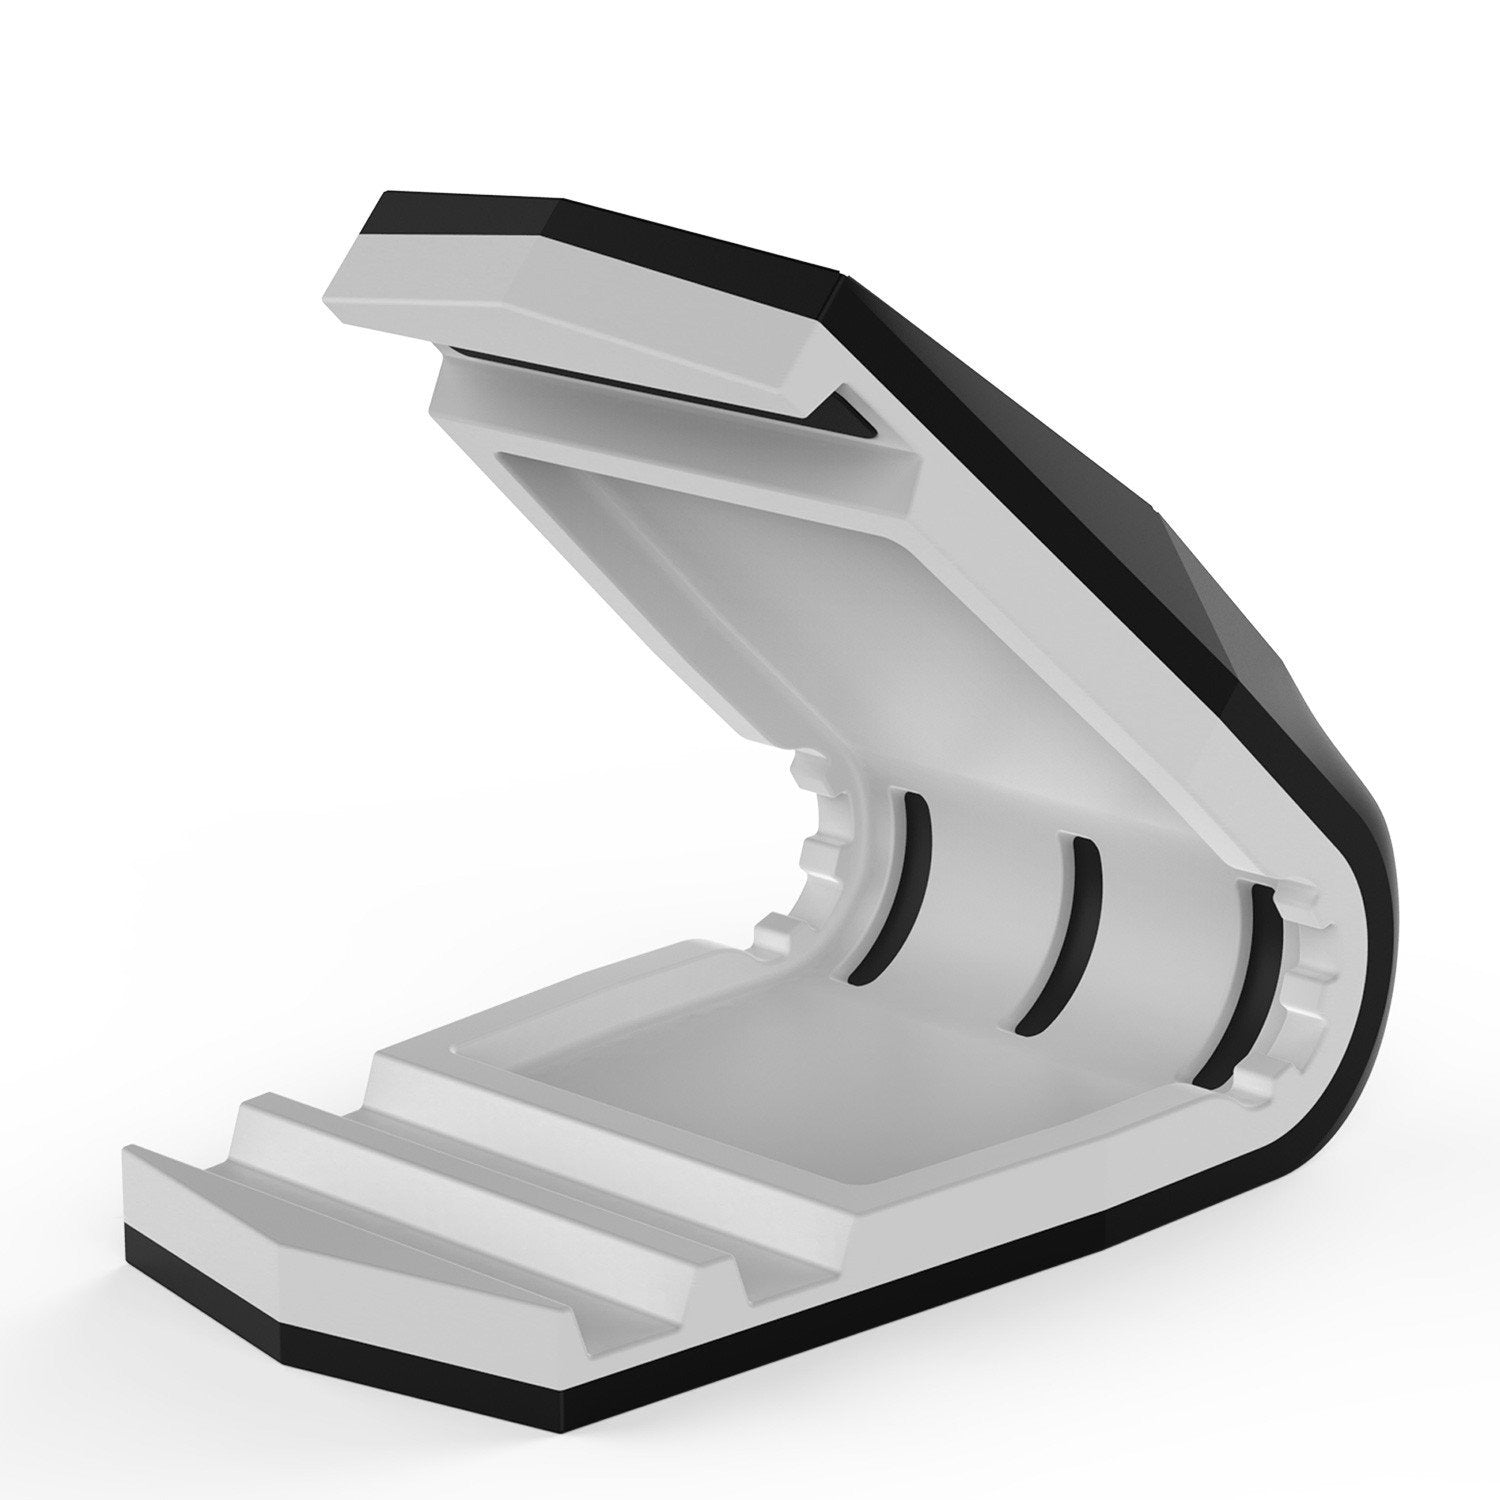 Viper Car Phone Holder White, Universal Dashboard Mount for all Smartphones - PunkCase NZ